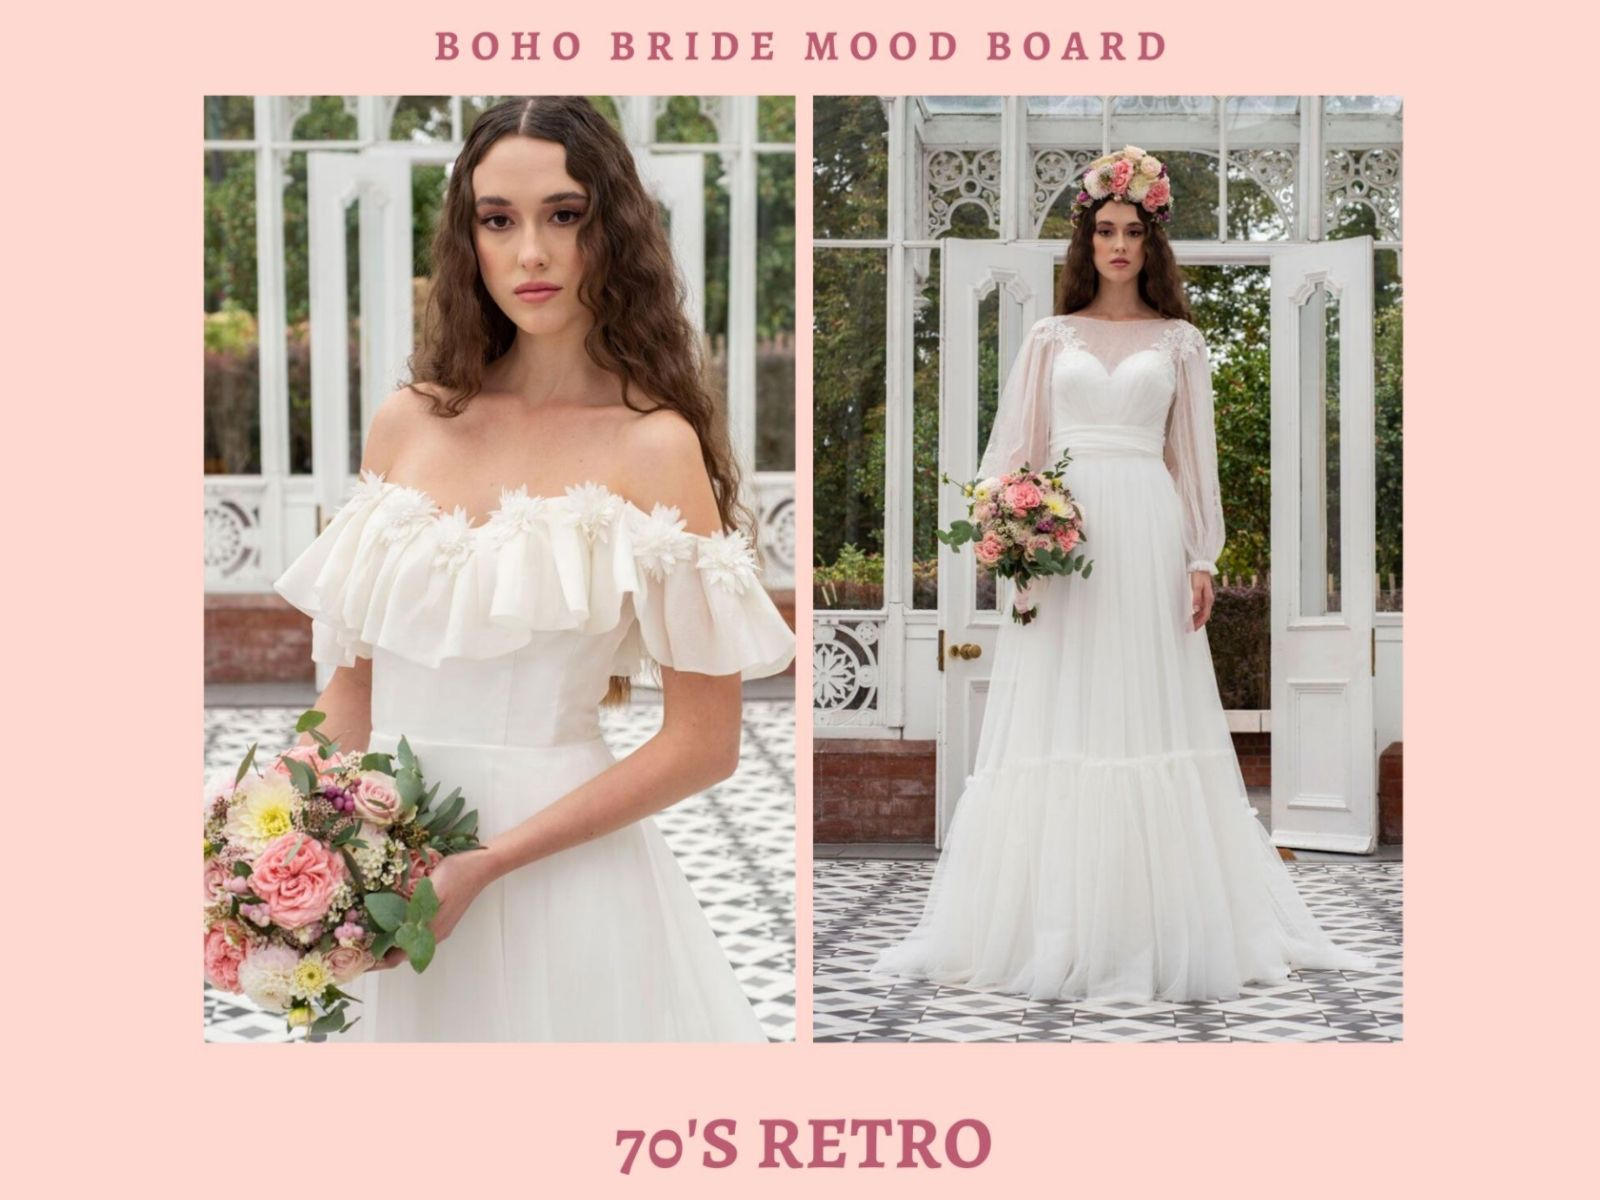 Boho Bride wedding dress wishlist